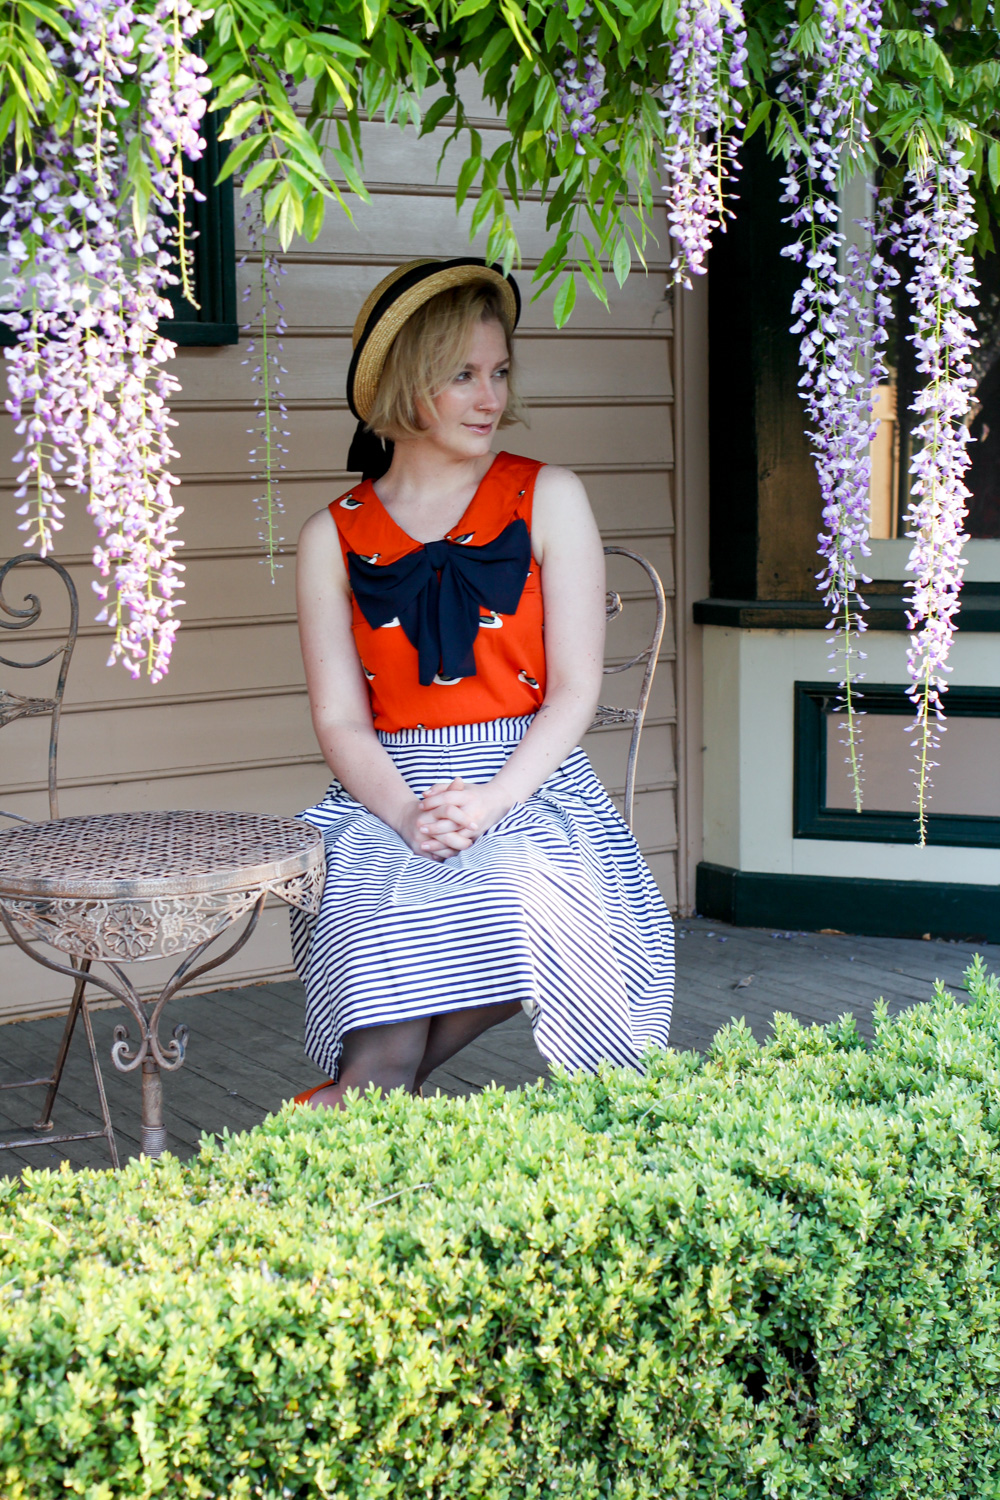 @findingfemme wears Review Australia skirt, Mimco flats and orange duck blouse with straw boater.